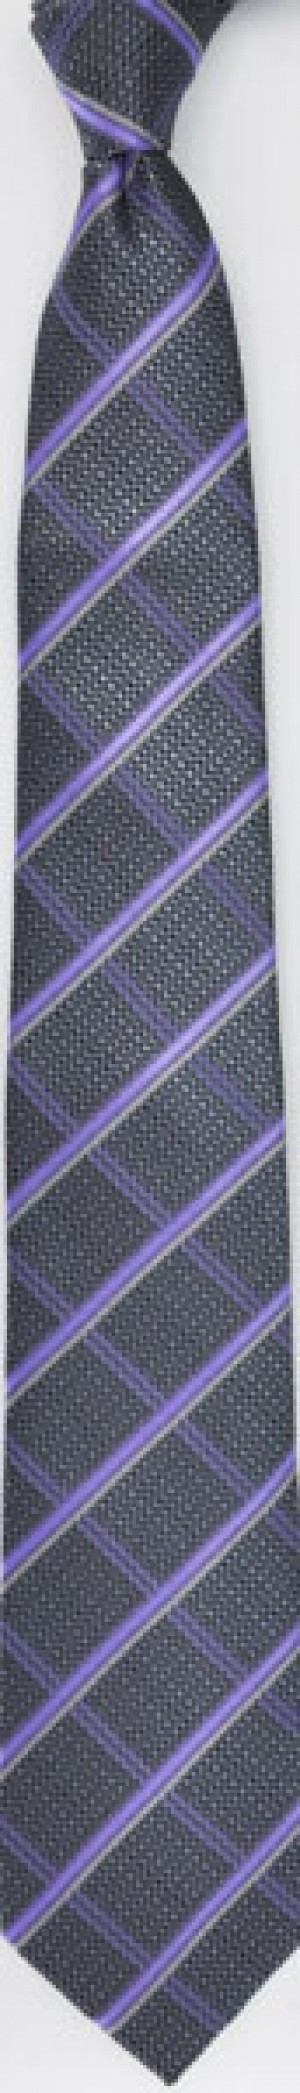 TIE - Purple Pattern